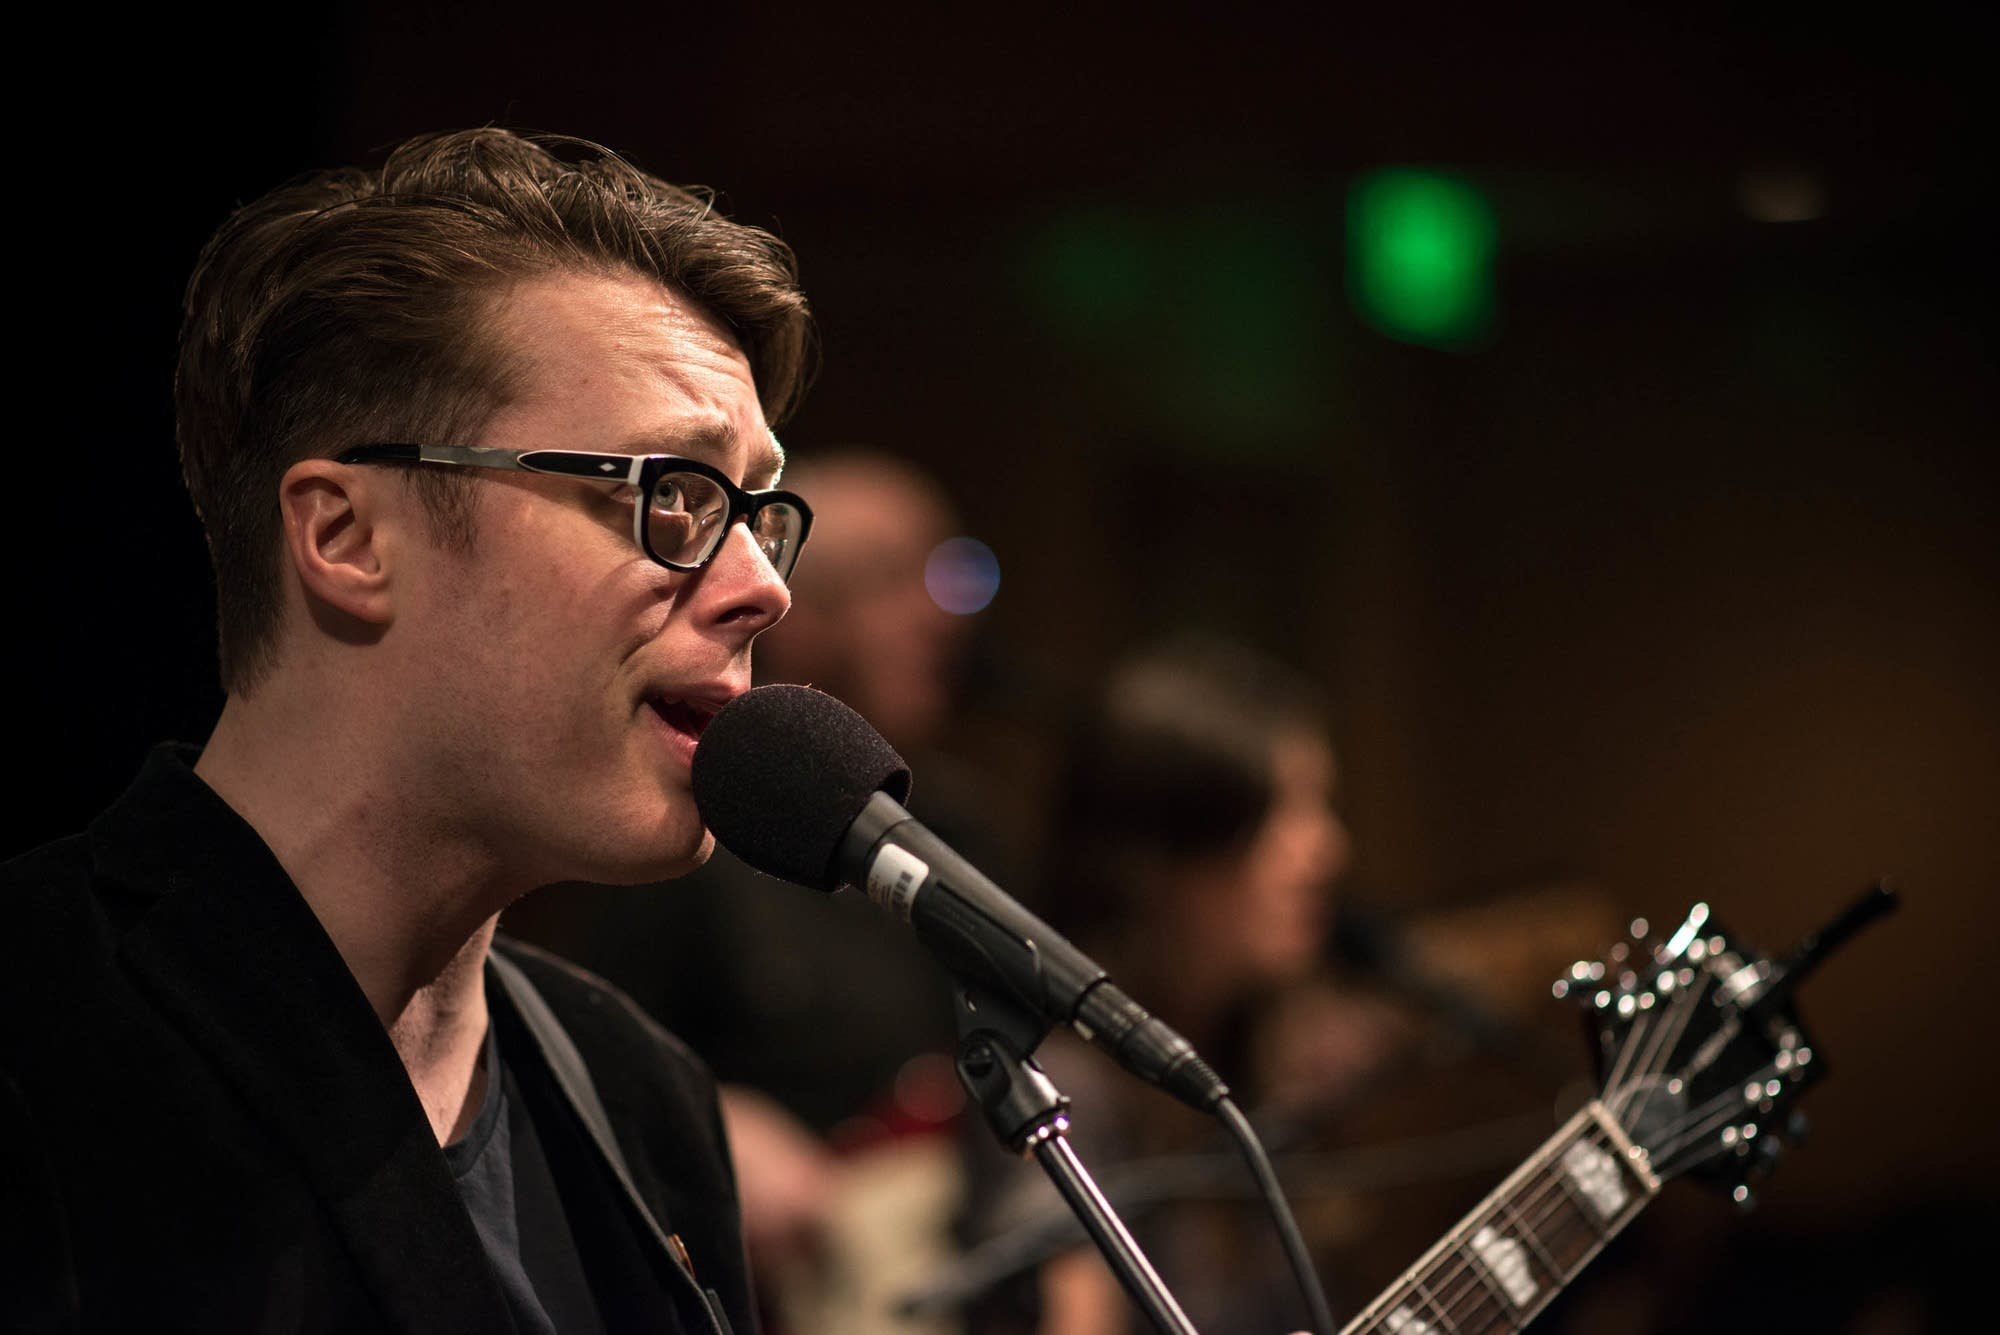 jeremy messersmith forum mic